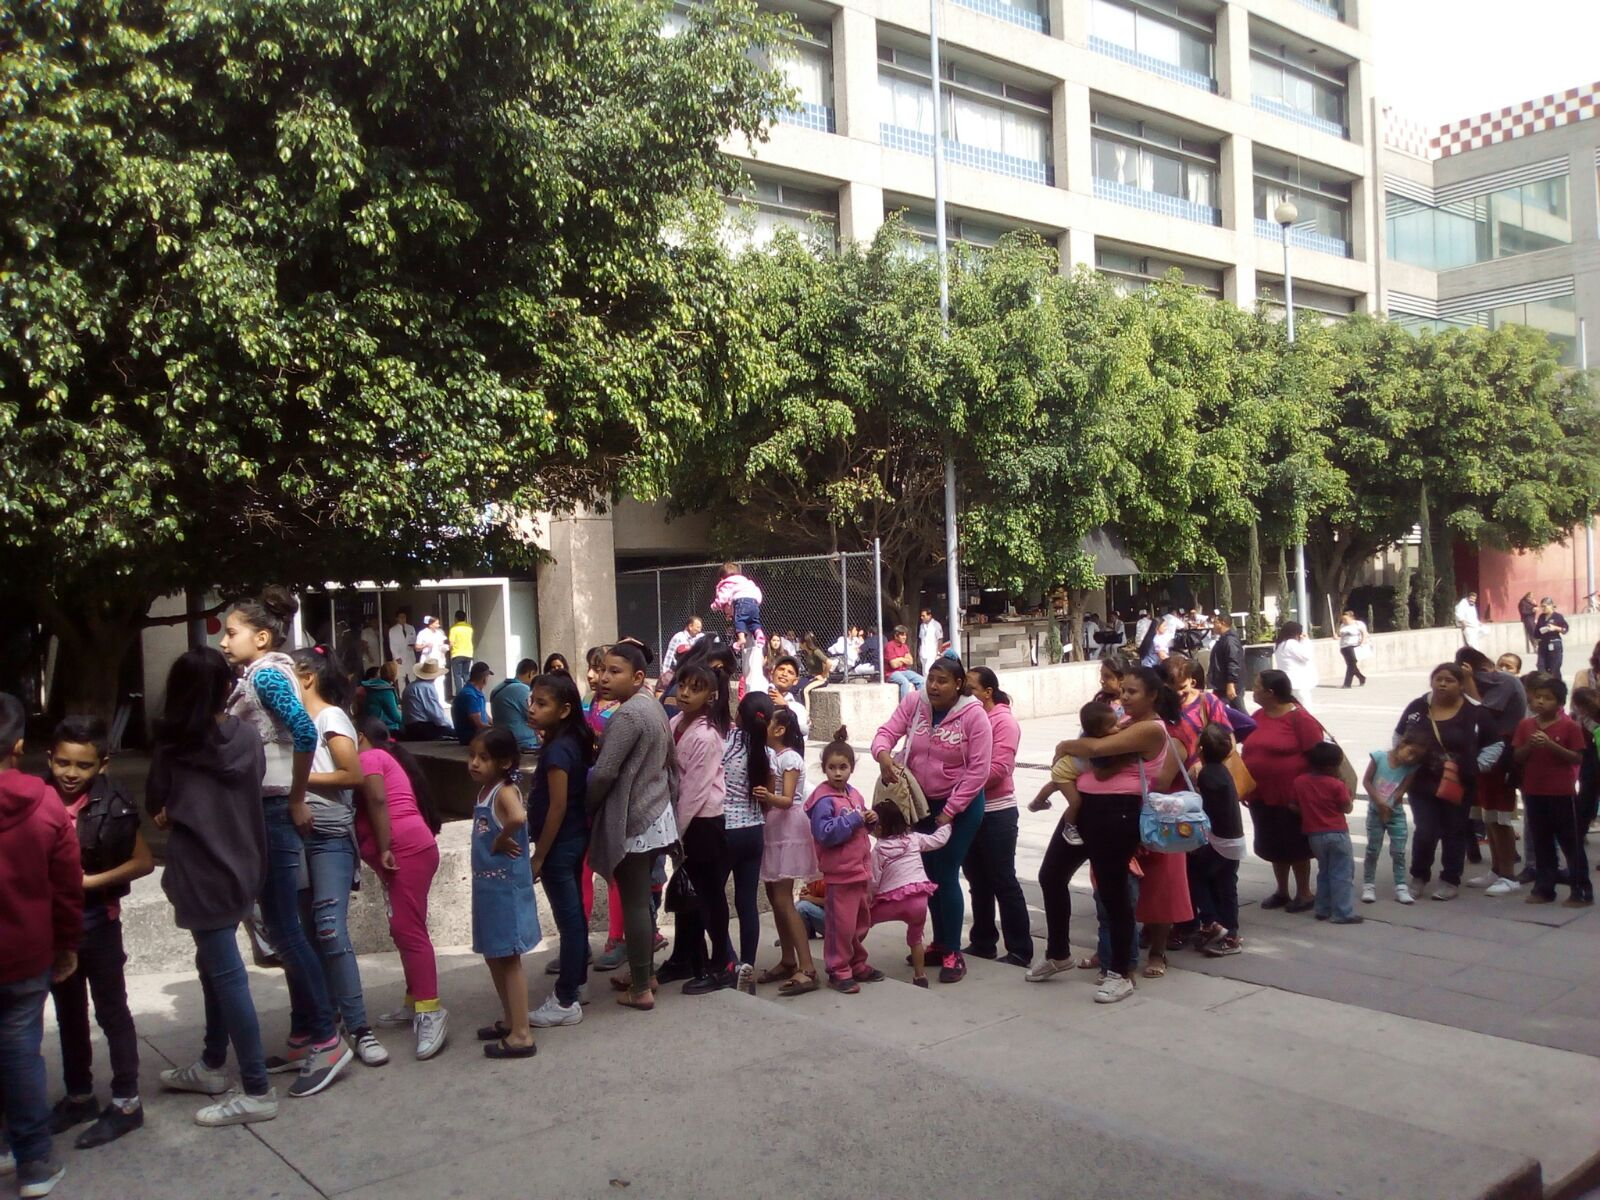 UNITEC Guadalajara y el Hospital Civil celebran el Día del Niño - Featured Image